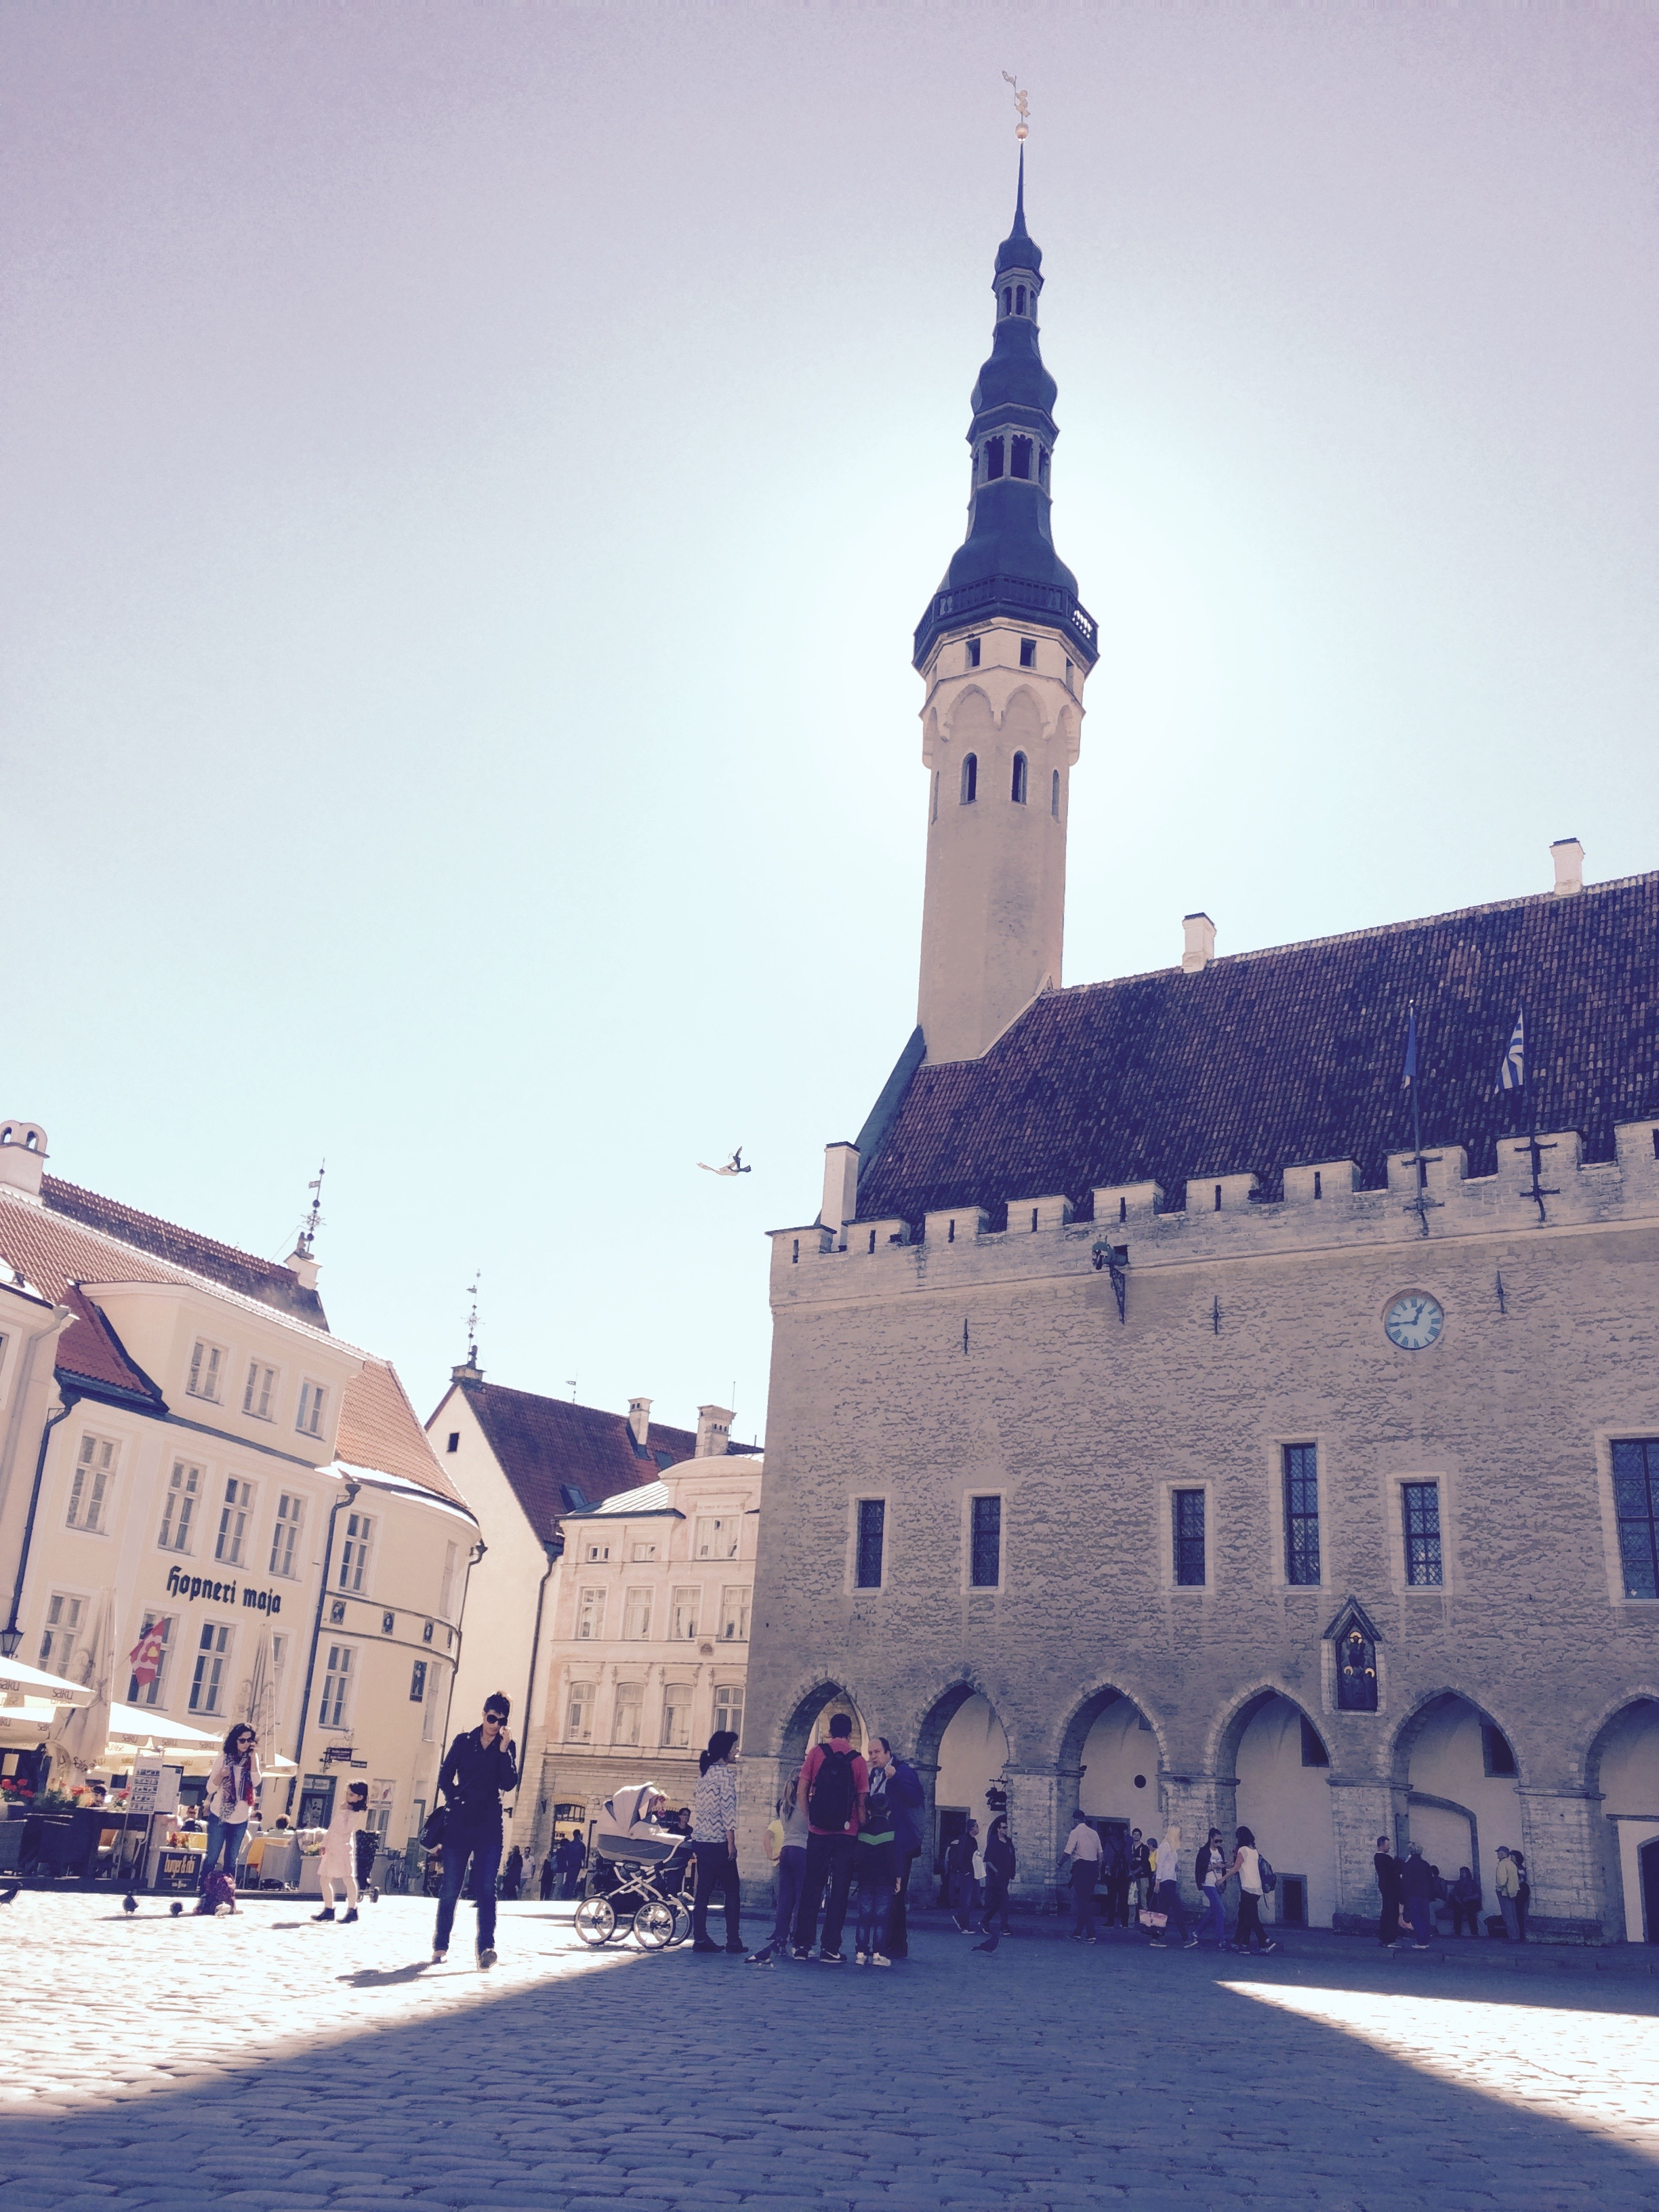 Tallinn Town Hall Square, Estonia